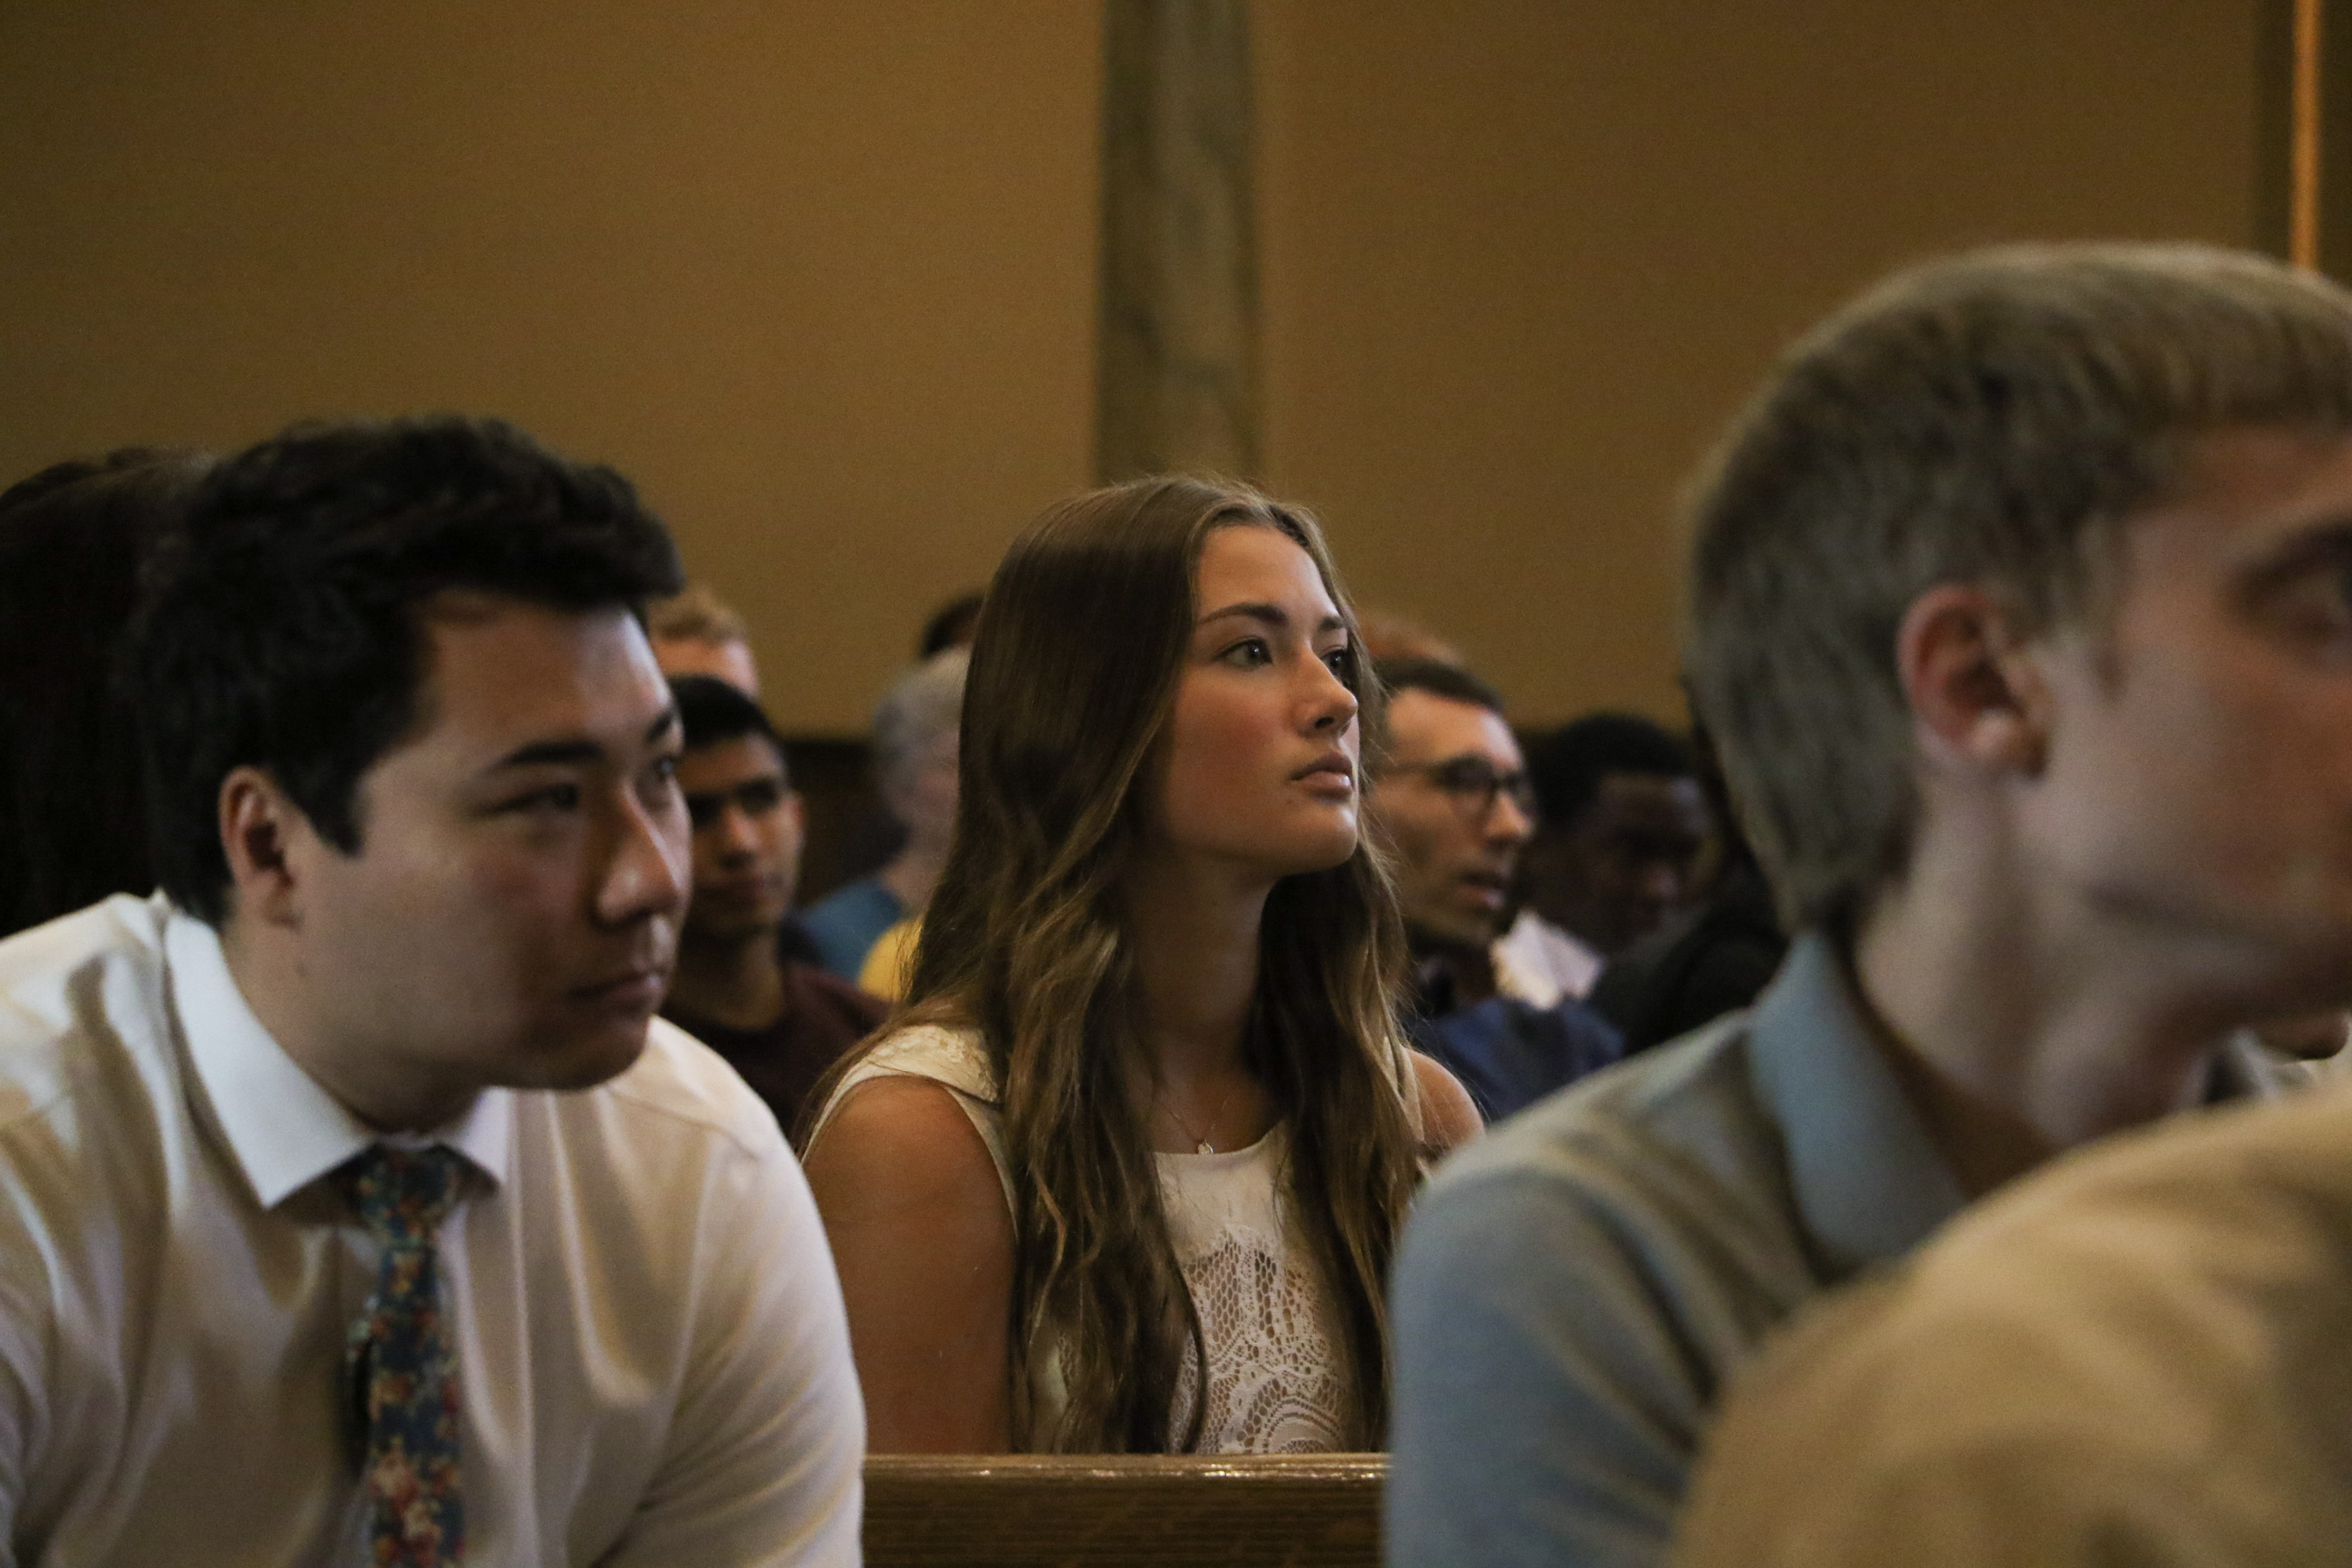 Students, faculty and guests listen to Sister Liz Darger in the Assembly Hall at Temple Square for an LDSBC devotional on June 18, 2019.